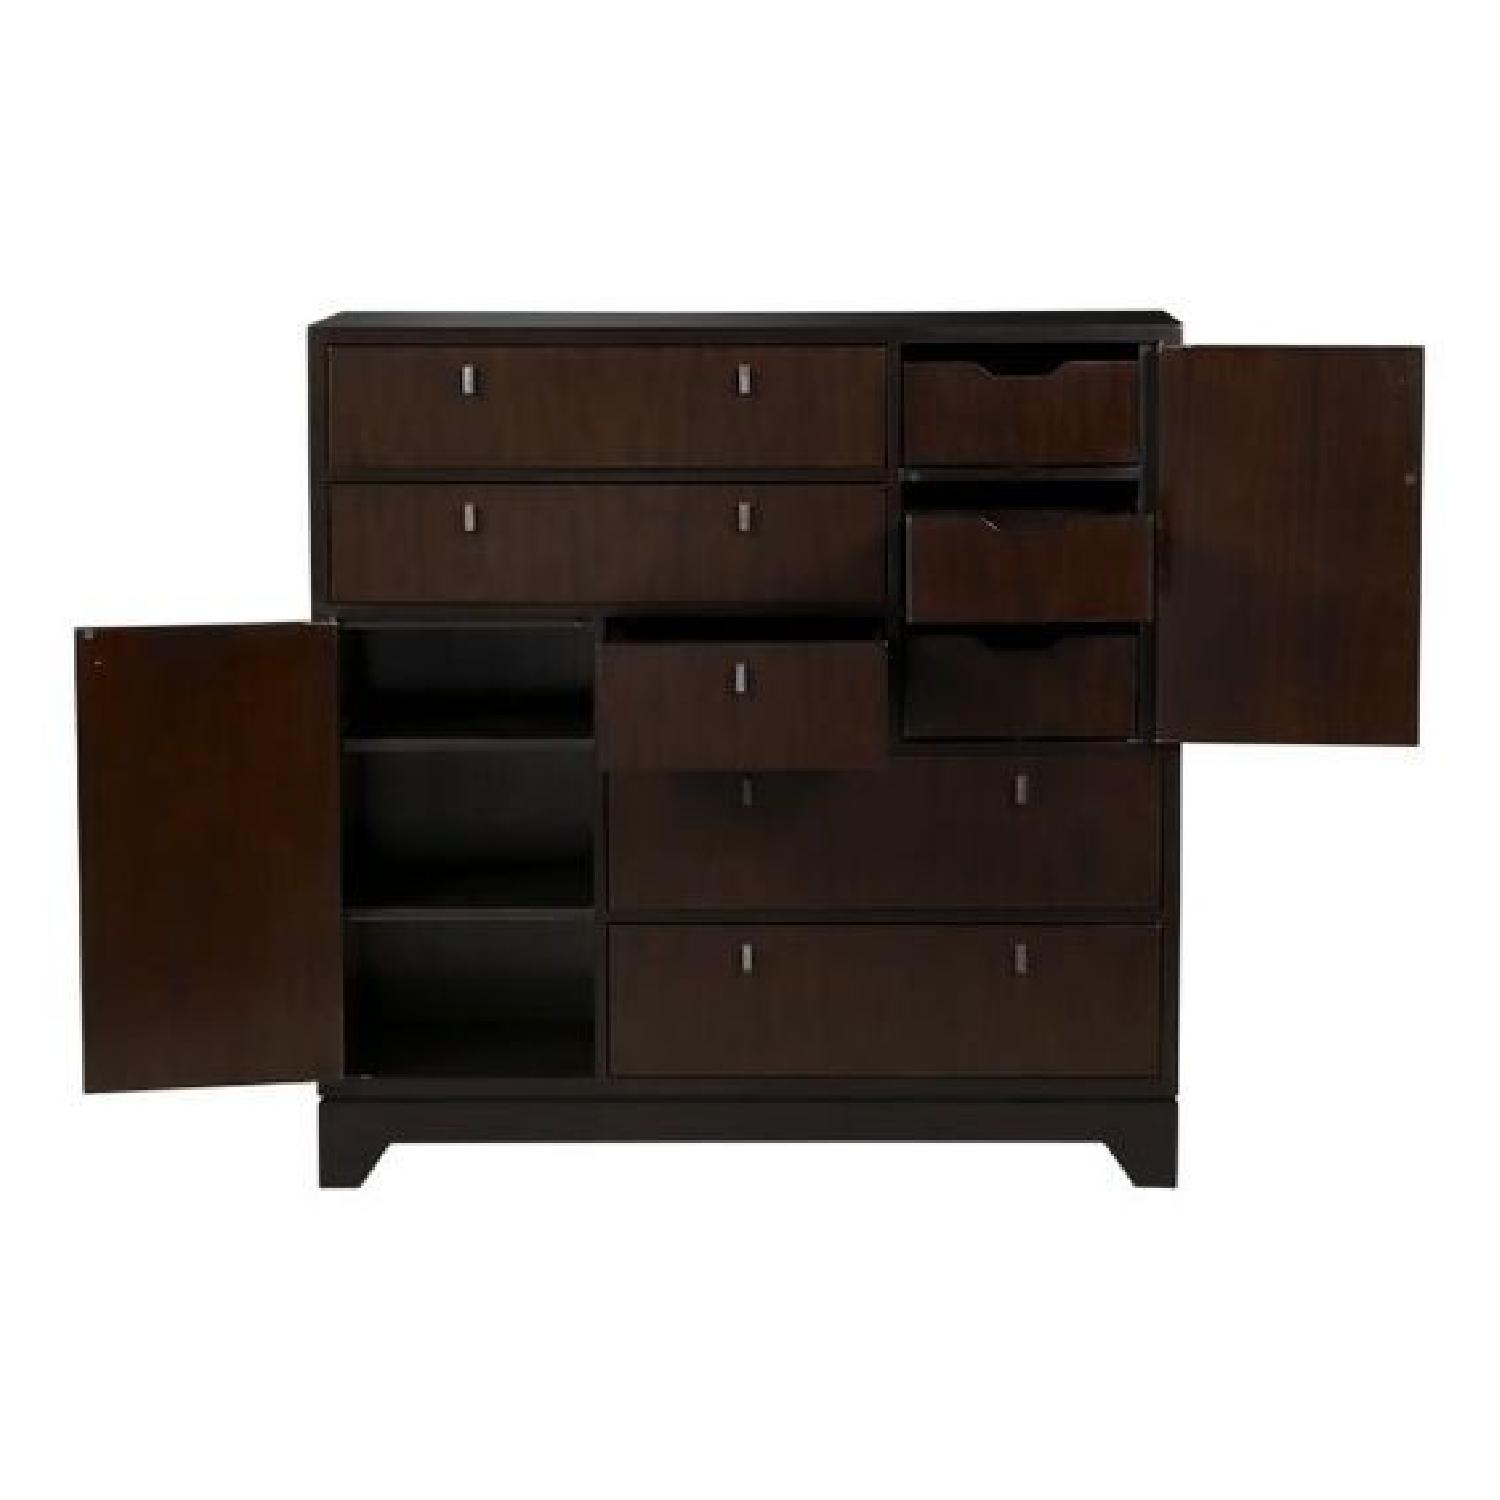 Crate & Barrel Ferris 8 Drawer Chest-2